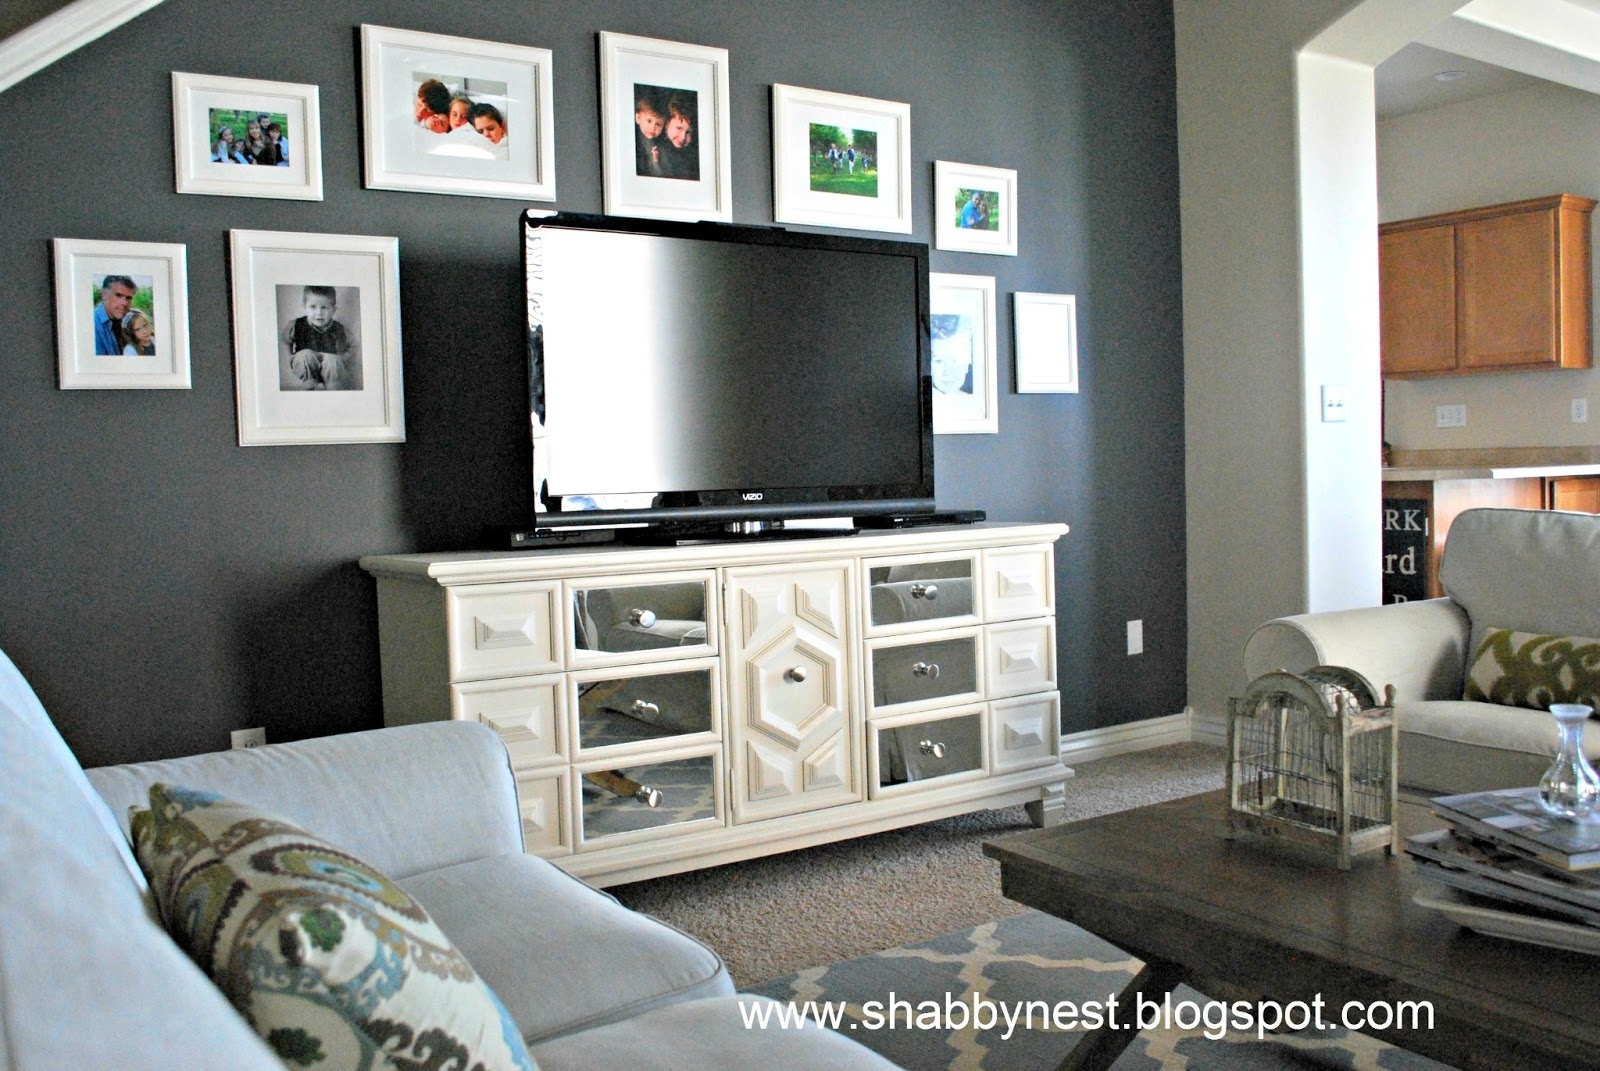 Wall Decor: Awesome Decorating A Living Room With Gray Walls Within 2018 Wall Accents For Grey Room (View 15 of 15)